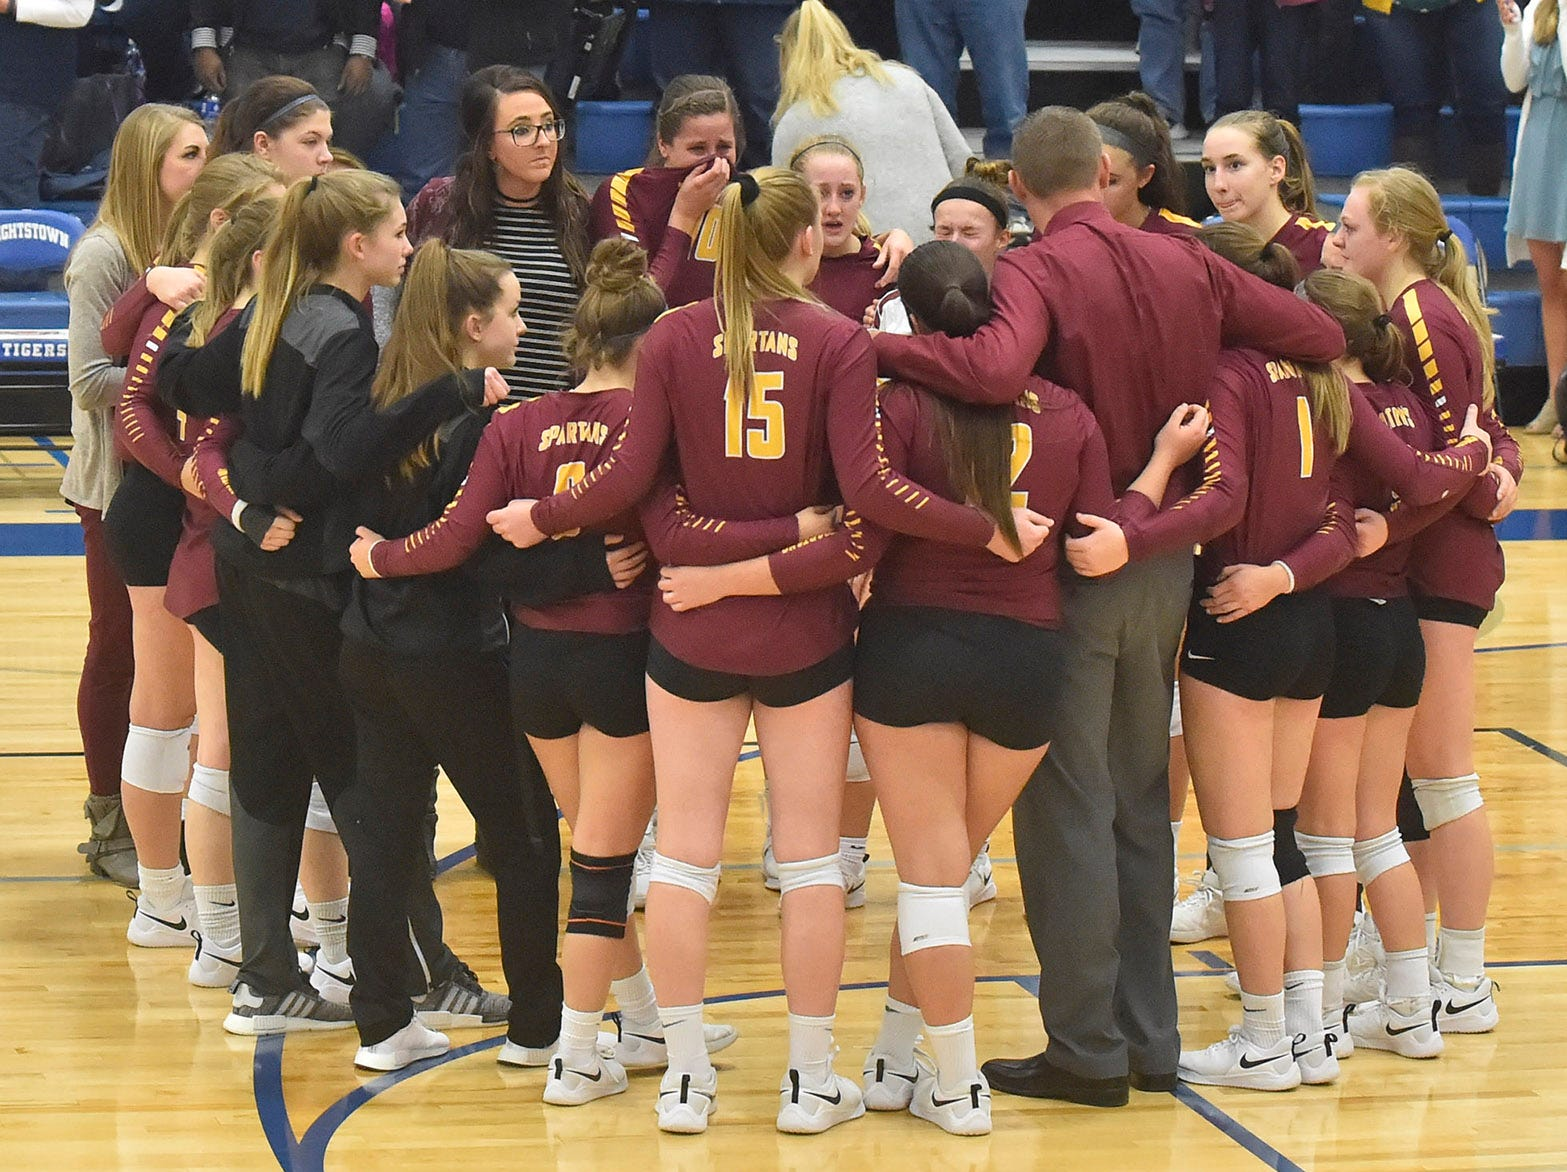 The Luxemburg-Casco volleyball team listens to a post-game talk by coach Jeff Frey after the team lost its bid to return to state on Saturday, Oct. 27, 2018. The Spartans lost the Division 2 sectional championship to Little Chute 3-1 at Wrightstown. Tina M. Gohr/USA TODAY NETWORK-Wisconsin